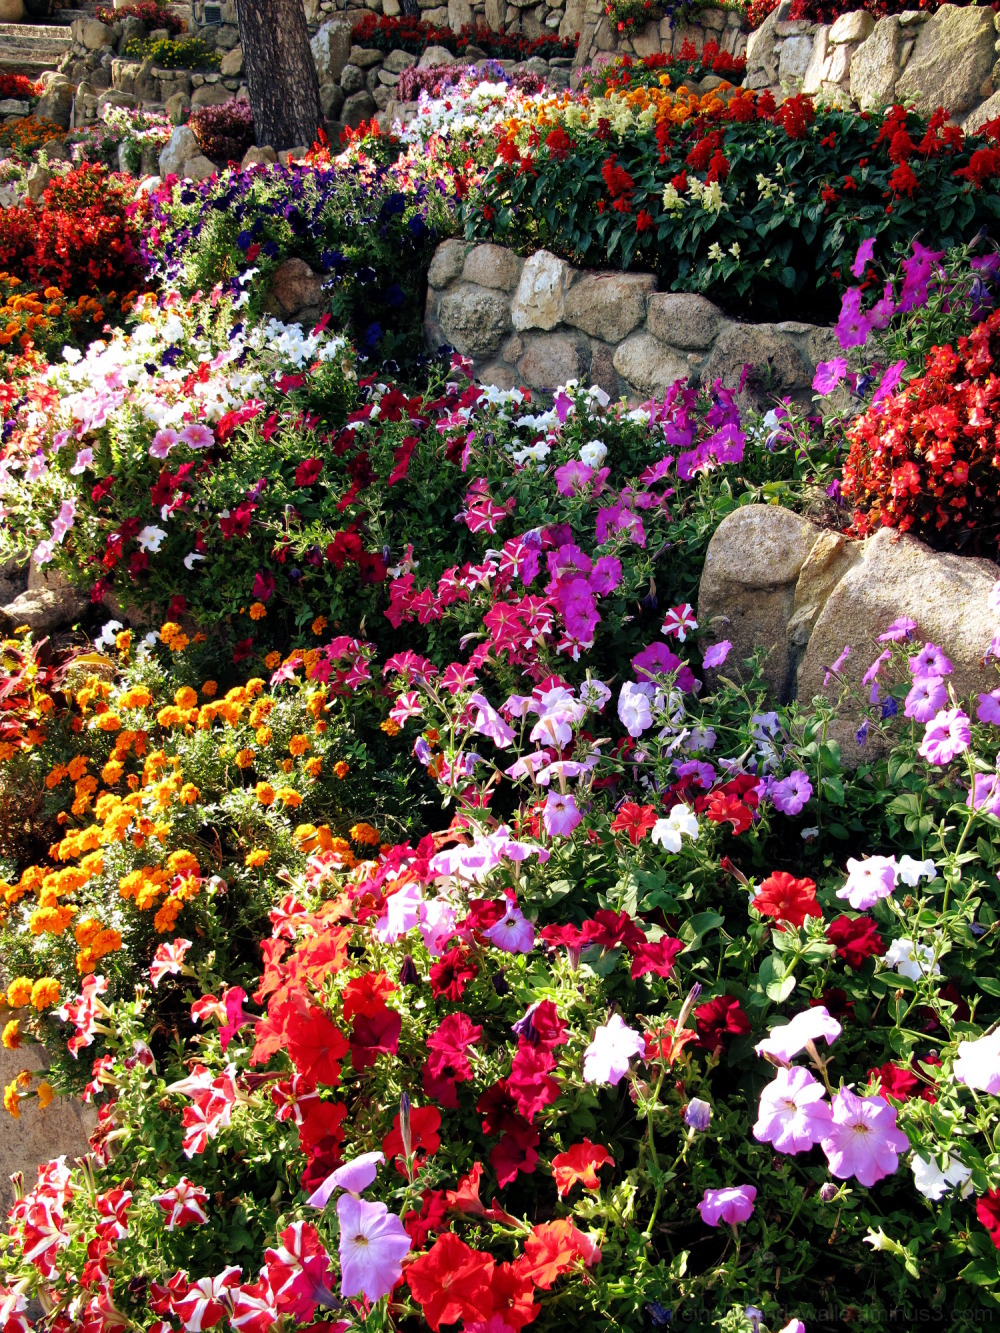 Flowers vivid colors.